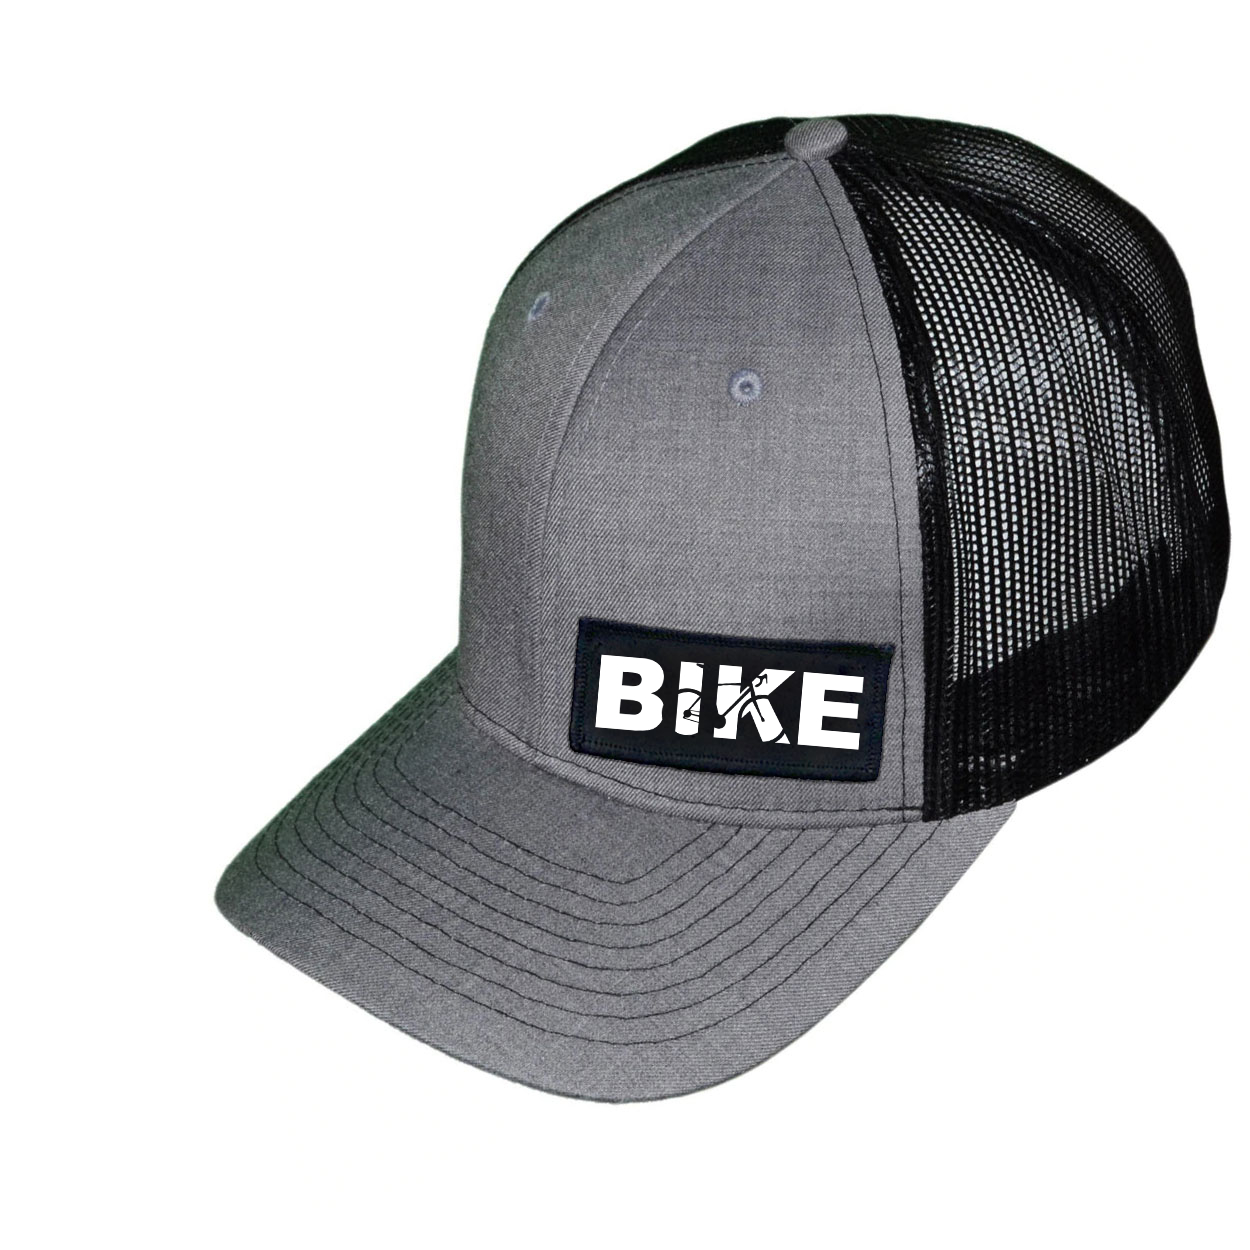 Bike Cycling Logo Night Out Woven Patch Snapback Trucker Hat Heather Gray/Black (White Logo)